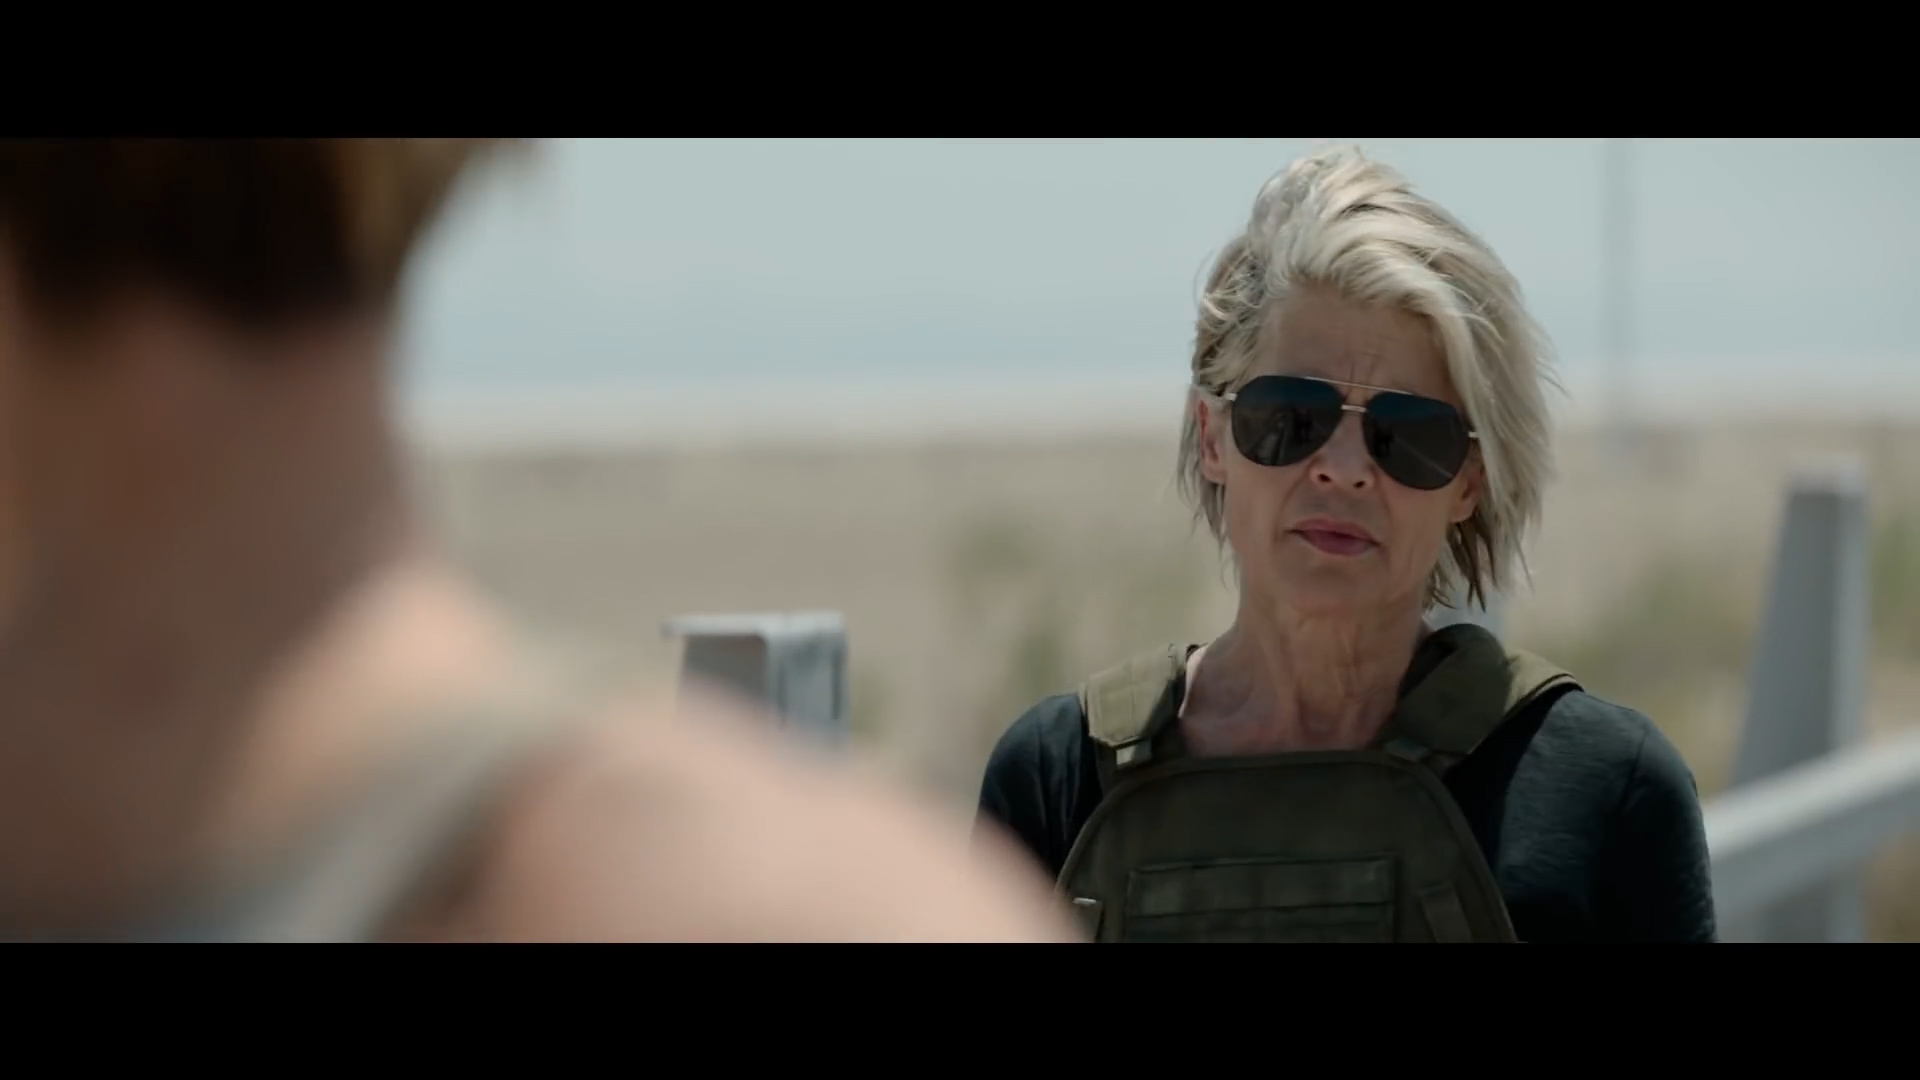 Terminator: Dark Fate - Official Trailer